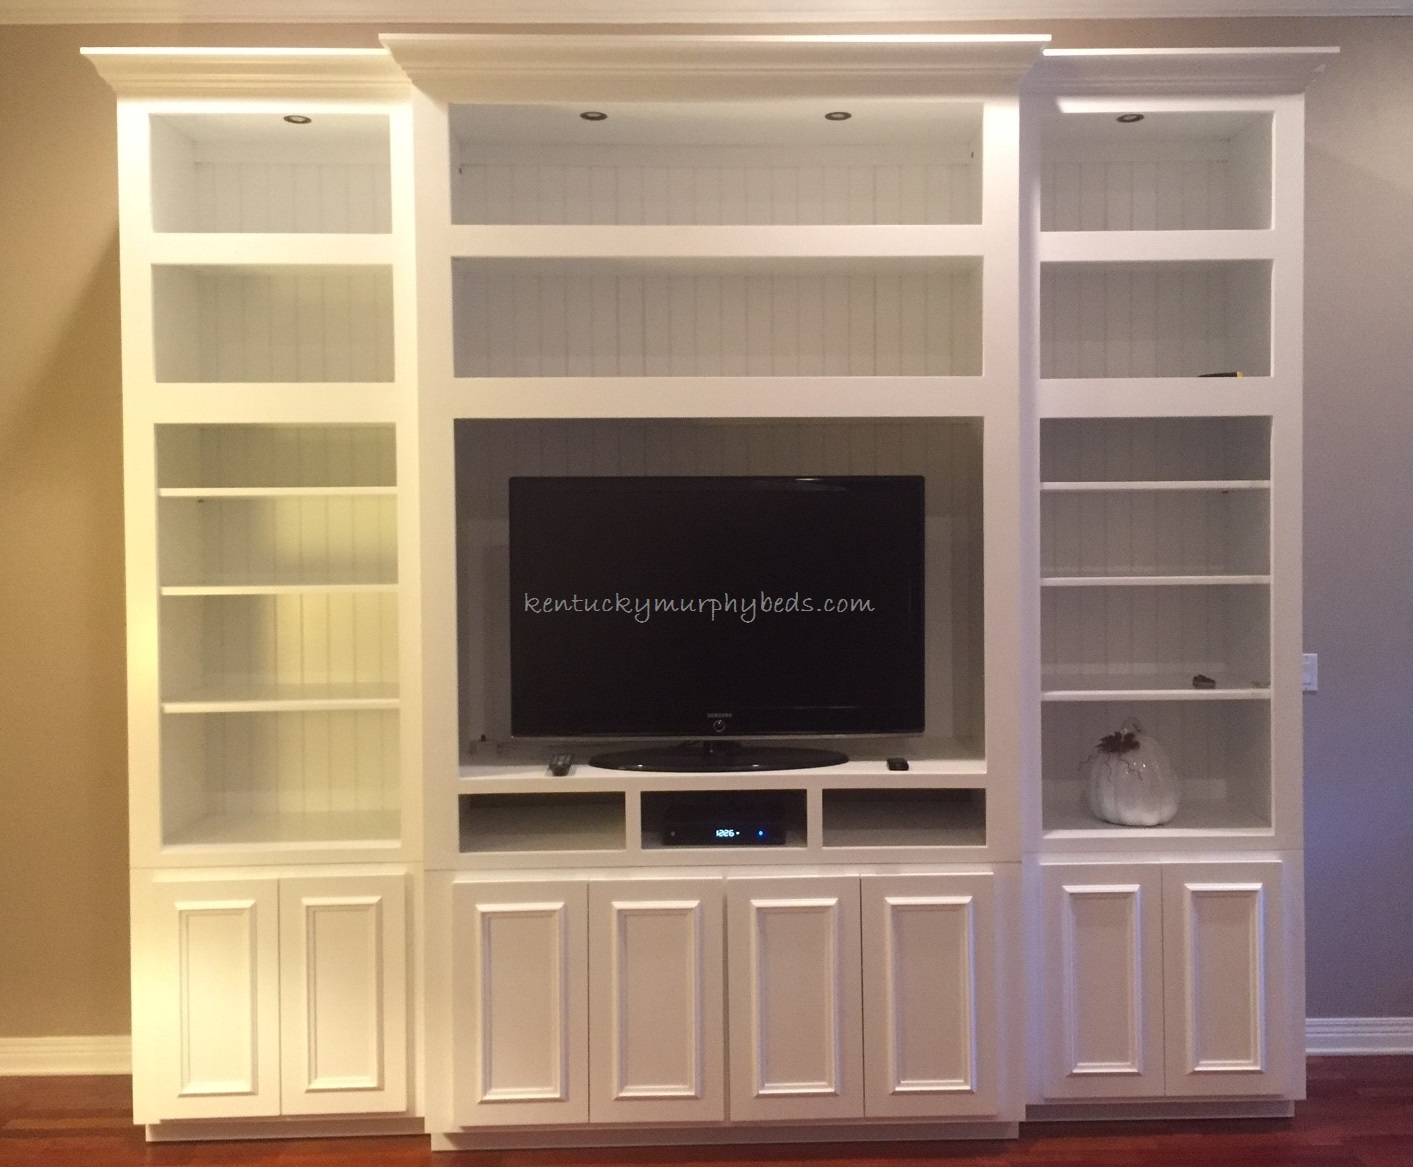 Entertainment Center of painted white MDF; open and closed cabinets; can lights